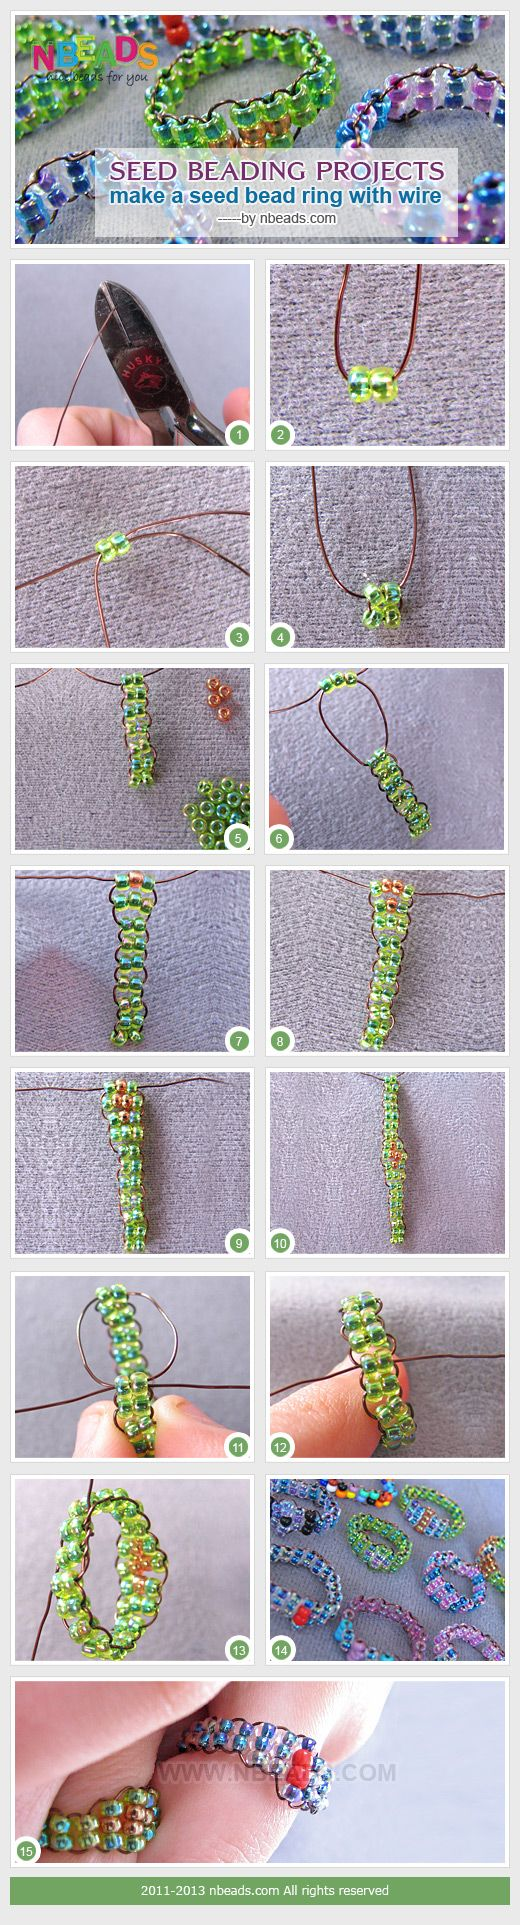 seed beading projects - make a seed bead ring with wire